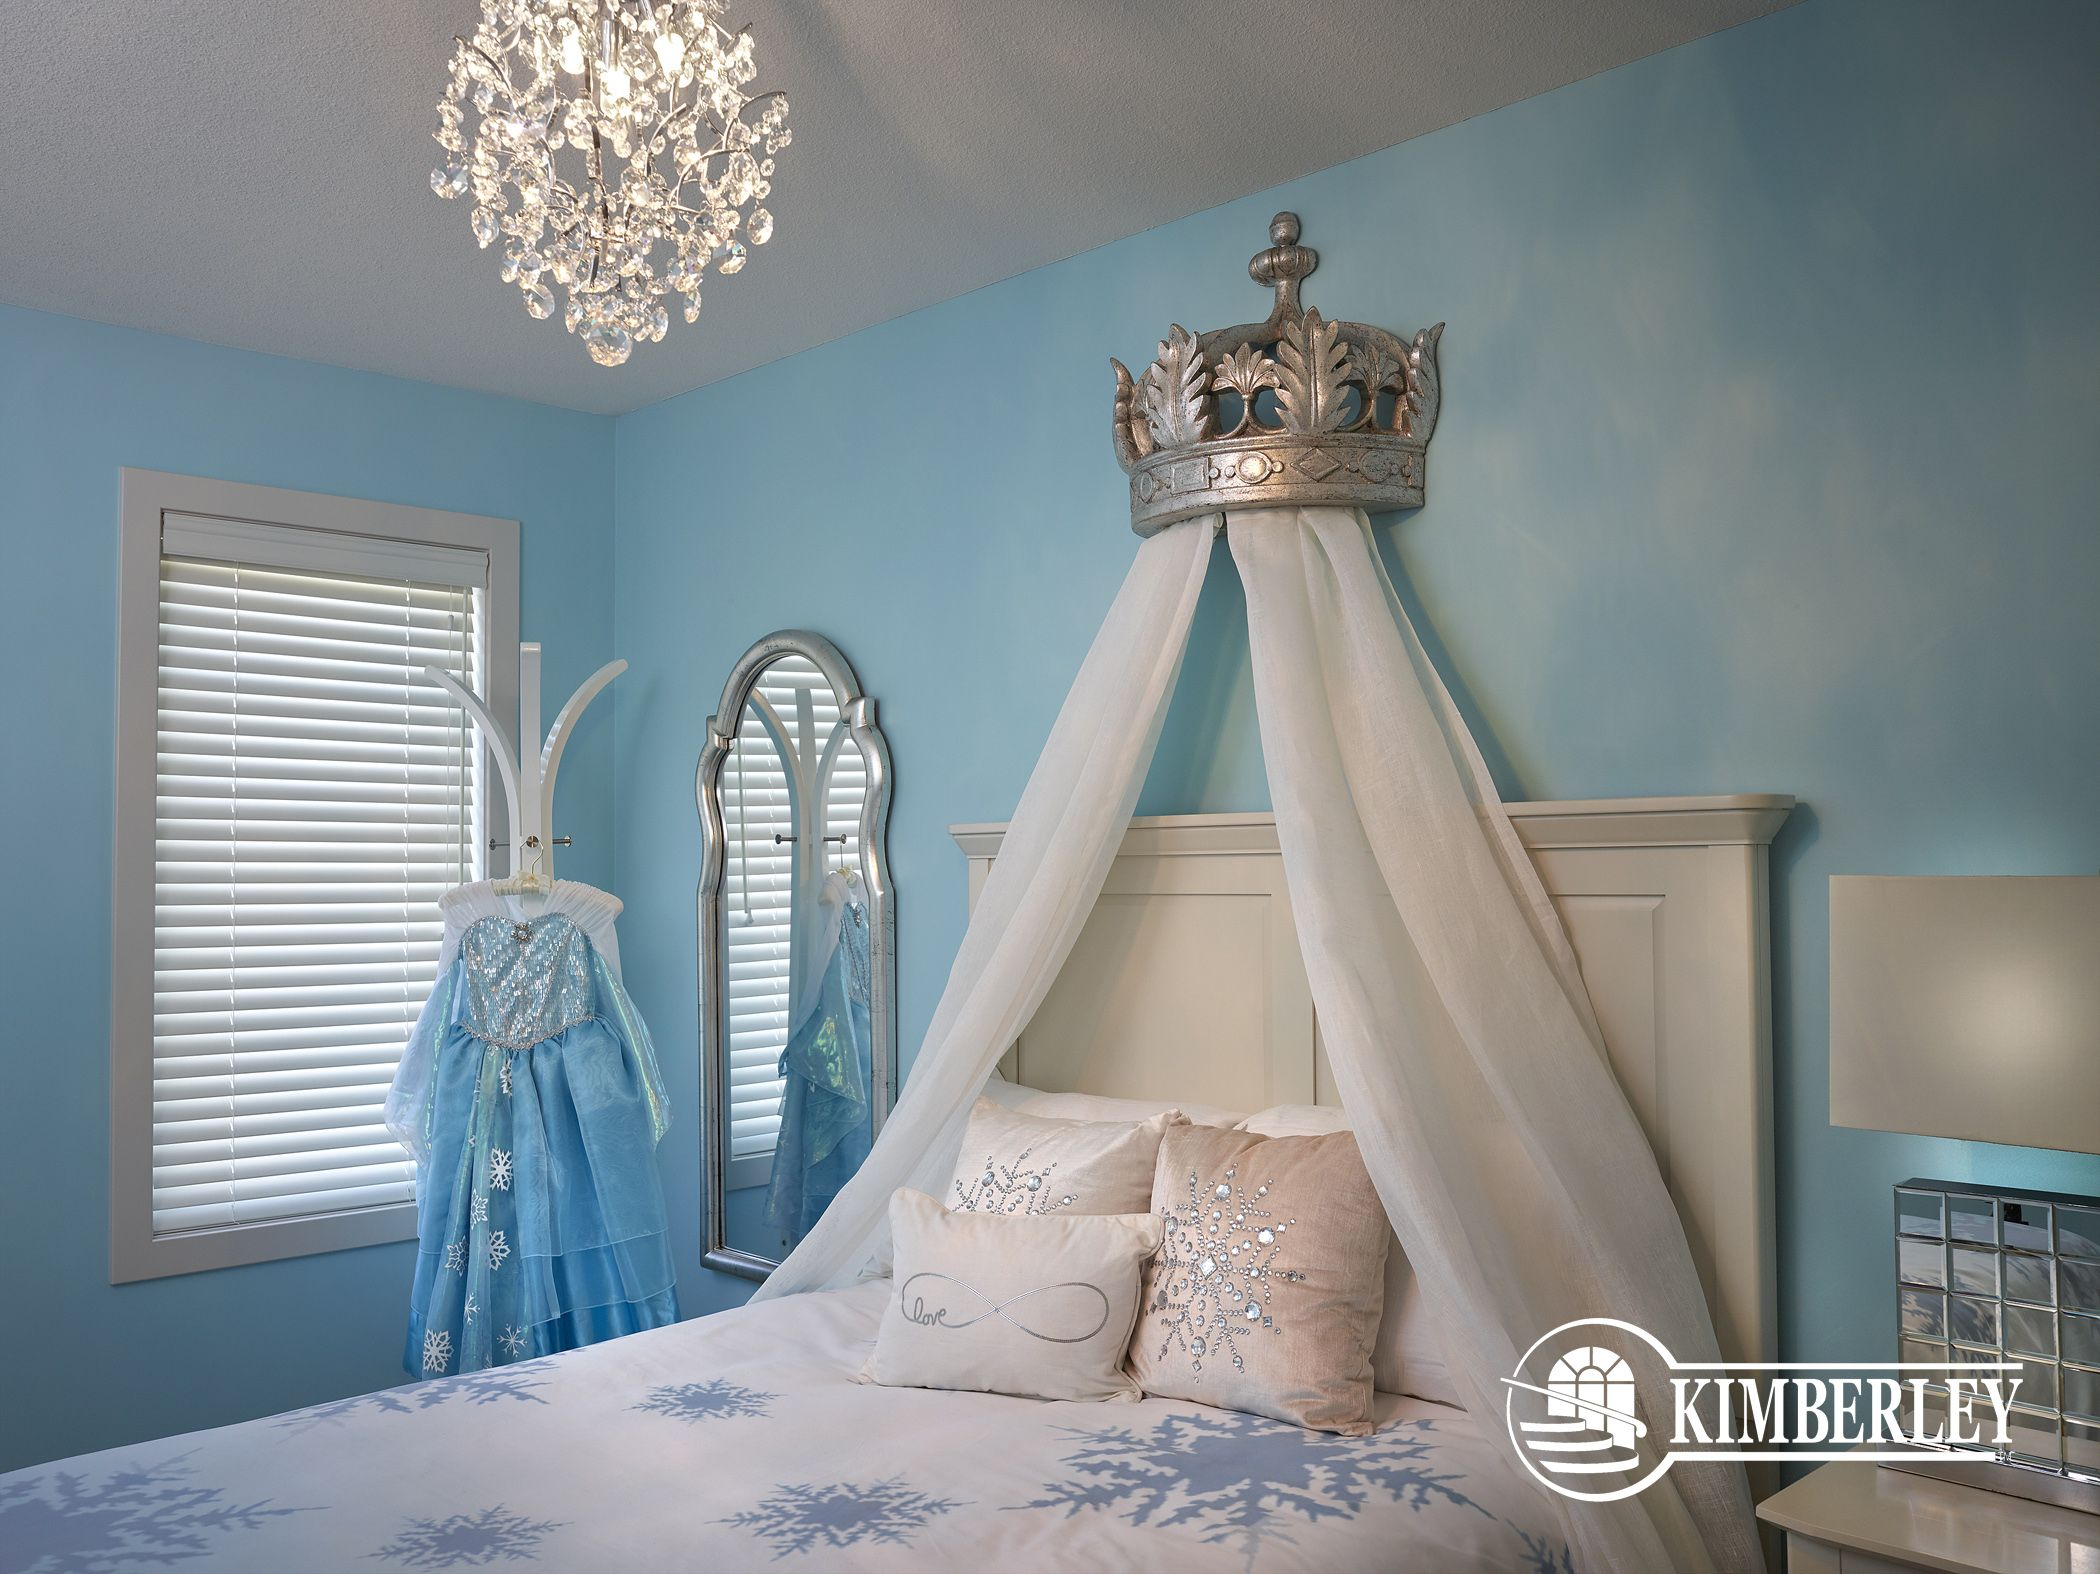 This Frozen Themed Bedroom Is Sure To Impress The Kids In